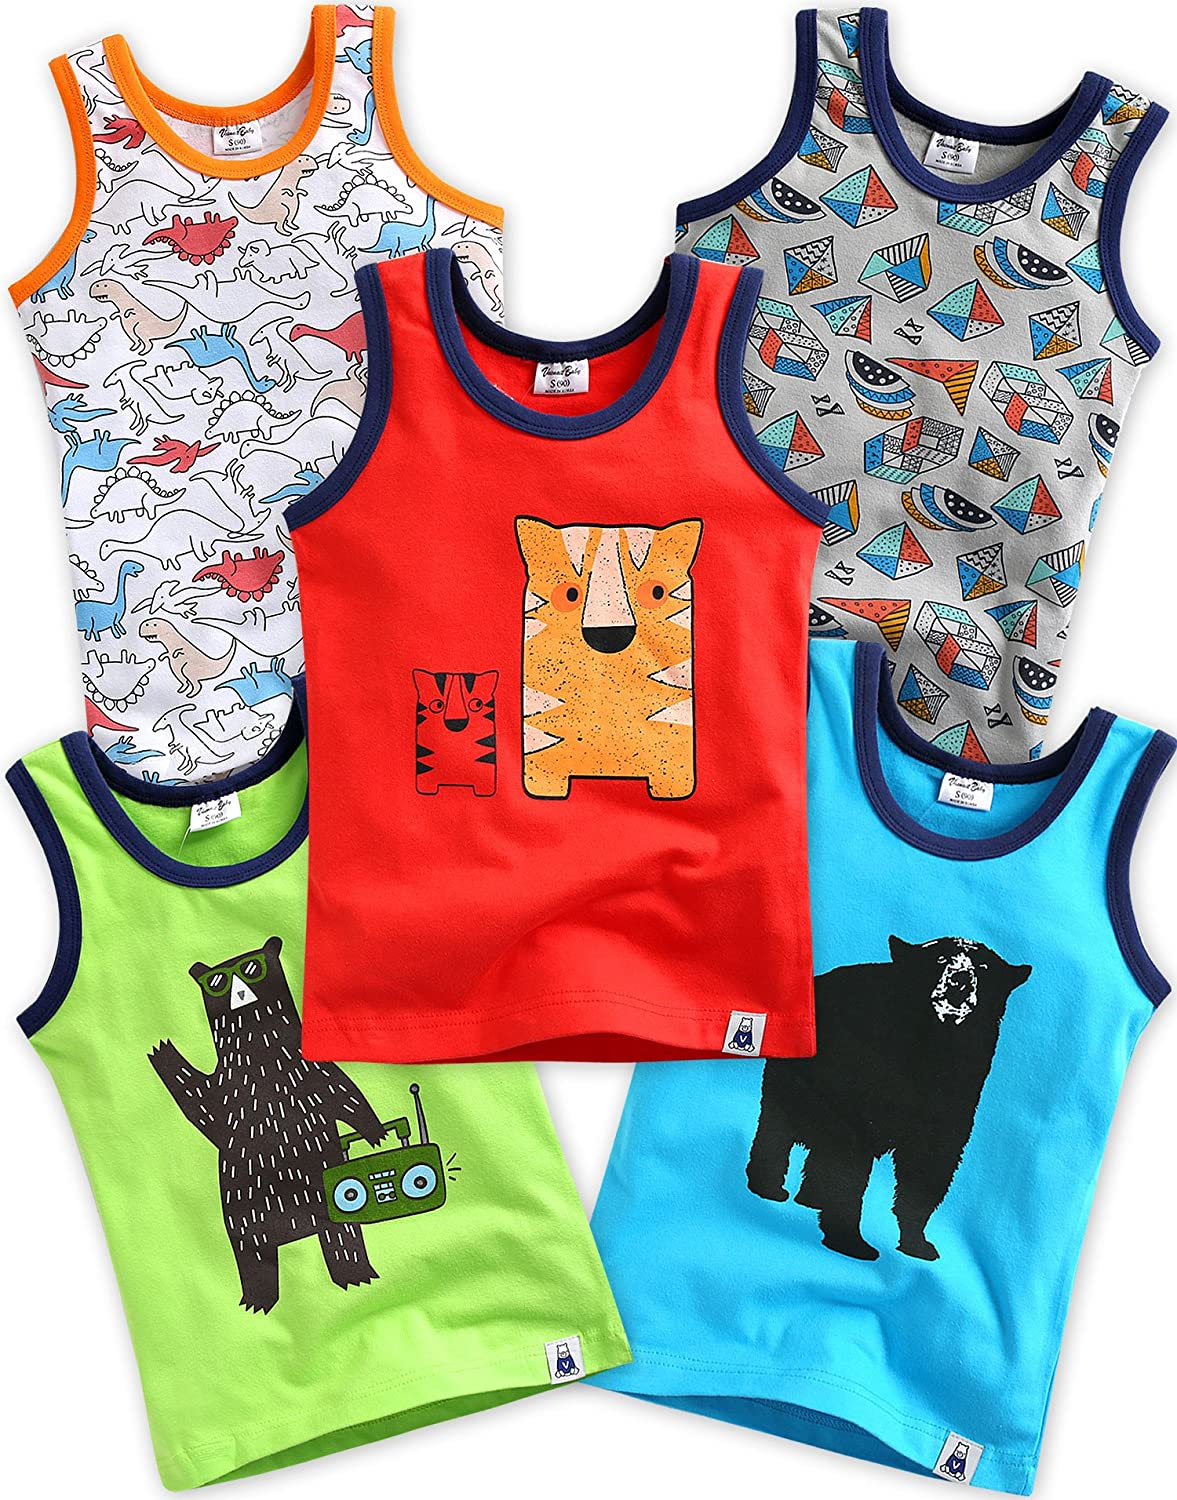 5 Pack Undershirts Jurassic/DJ Bear/Tiger Brother/Dancing Bear/Blue Dibo S BB_090-1